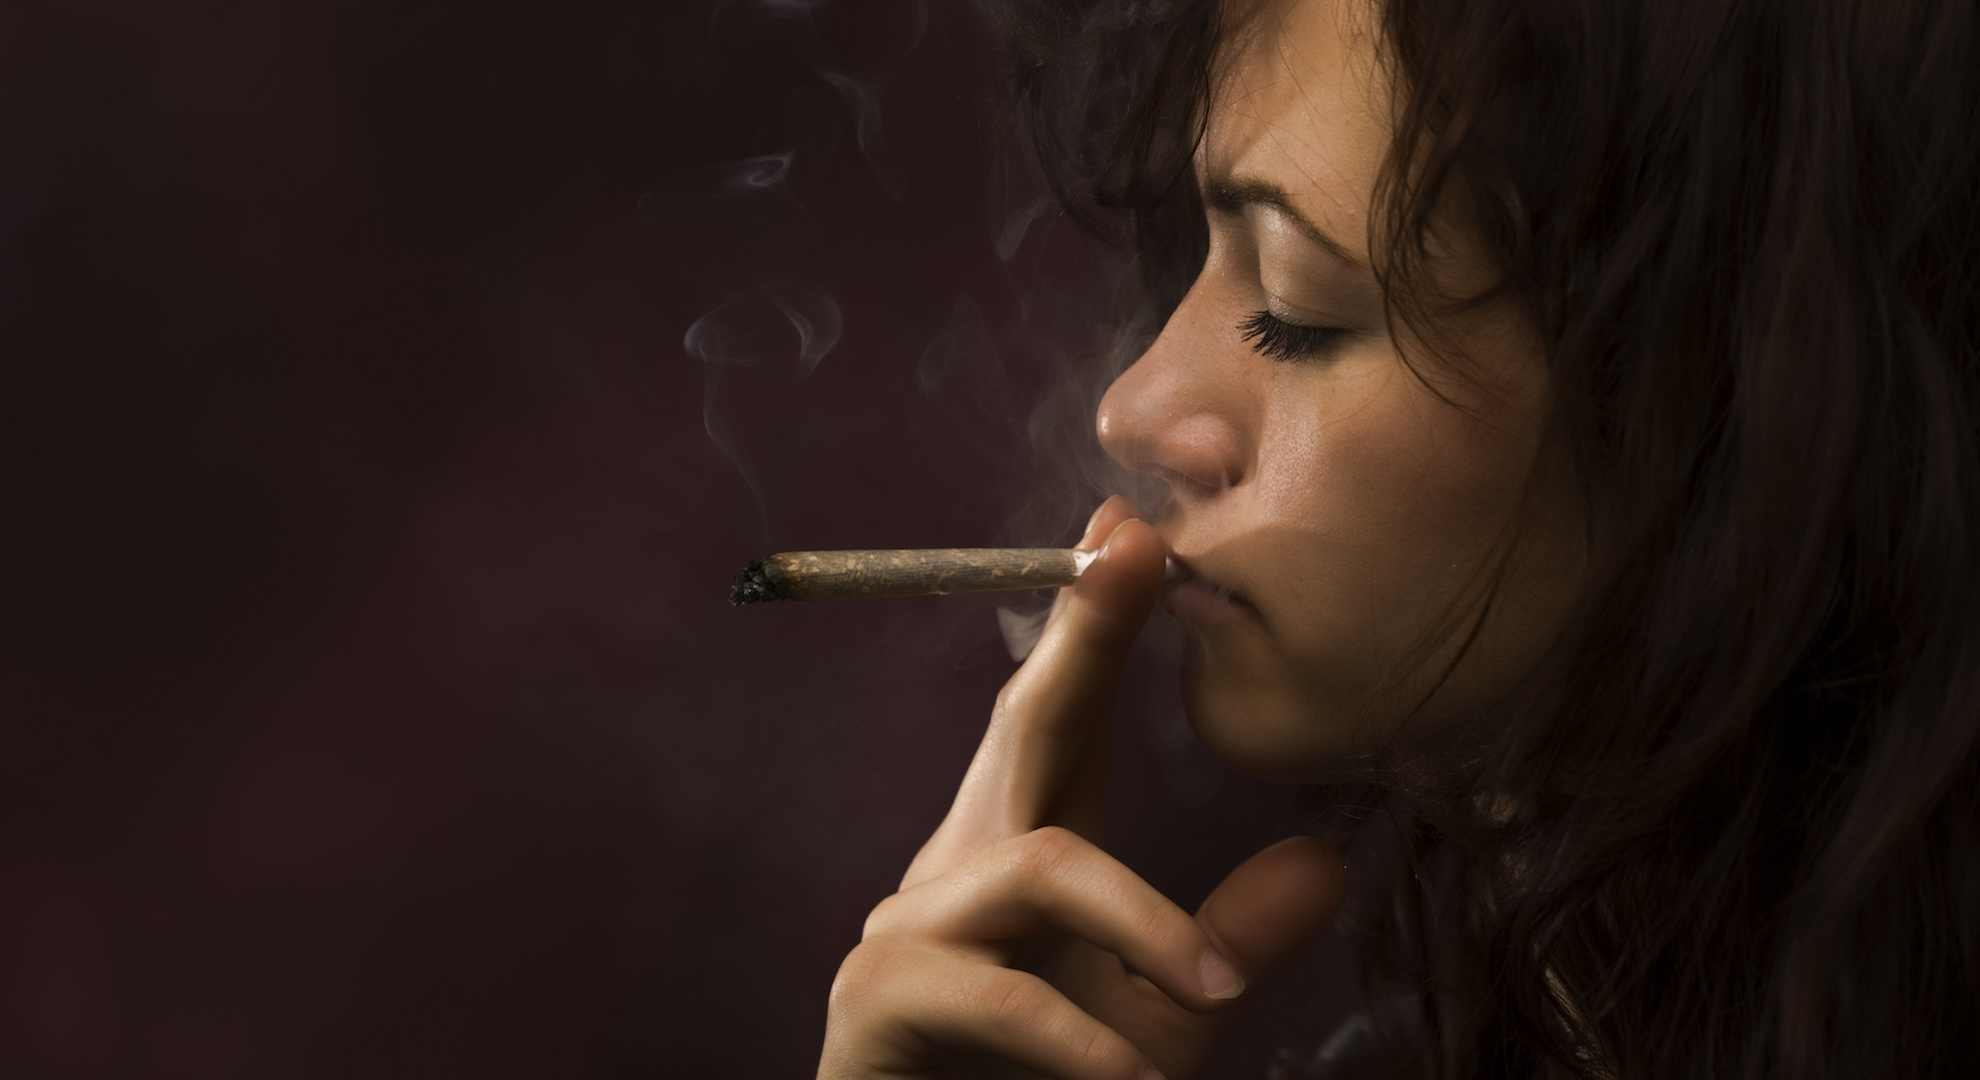 woman inhales from pot joint